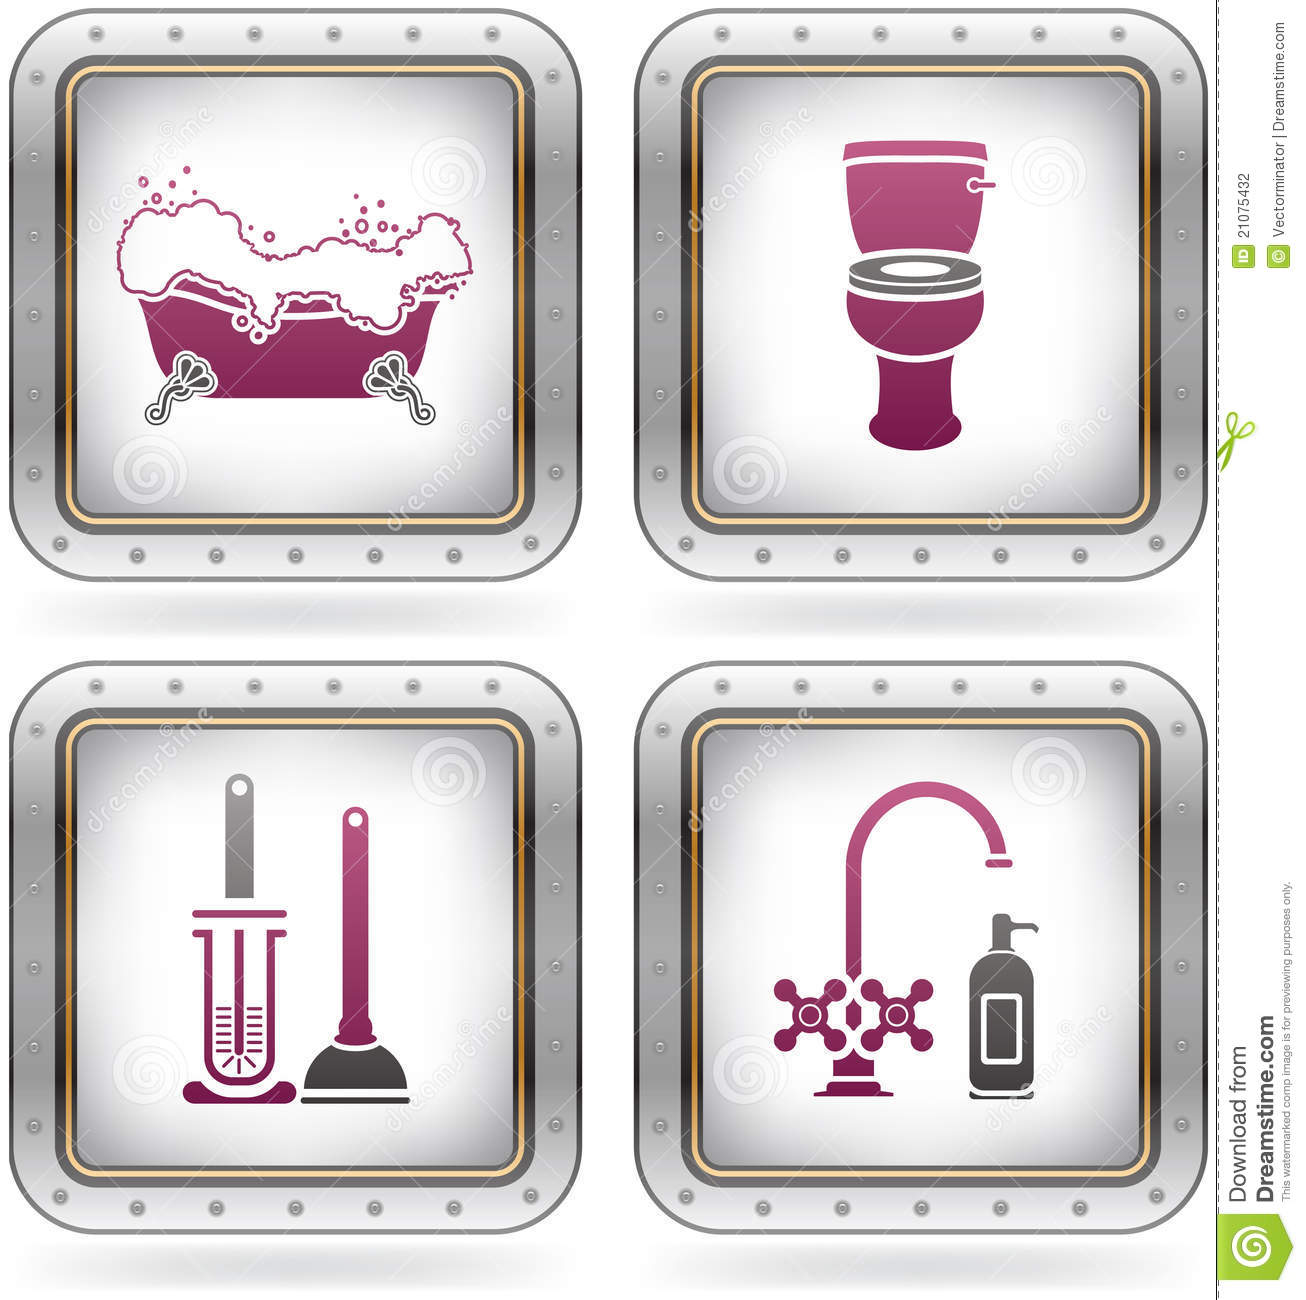 Bath utensils stock photography image 21075432 for Bathroom utensils